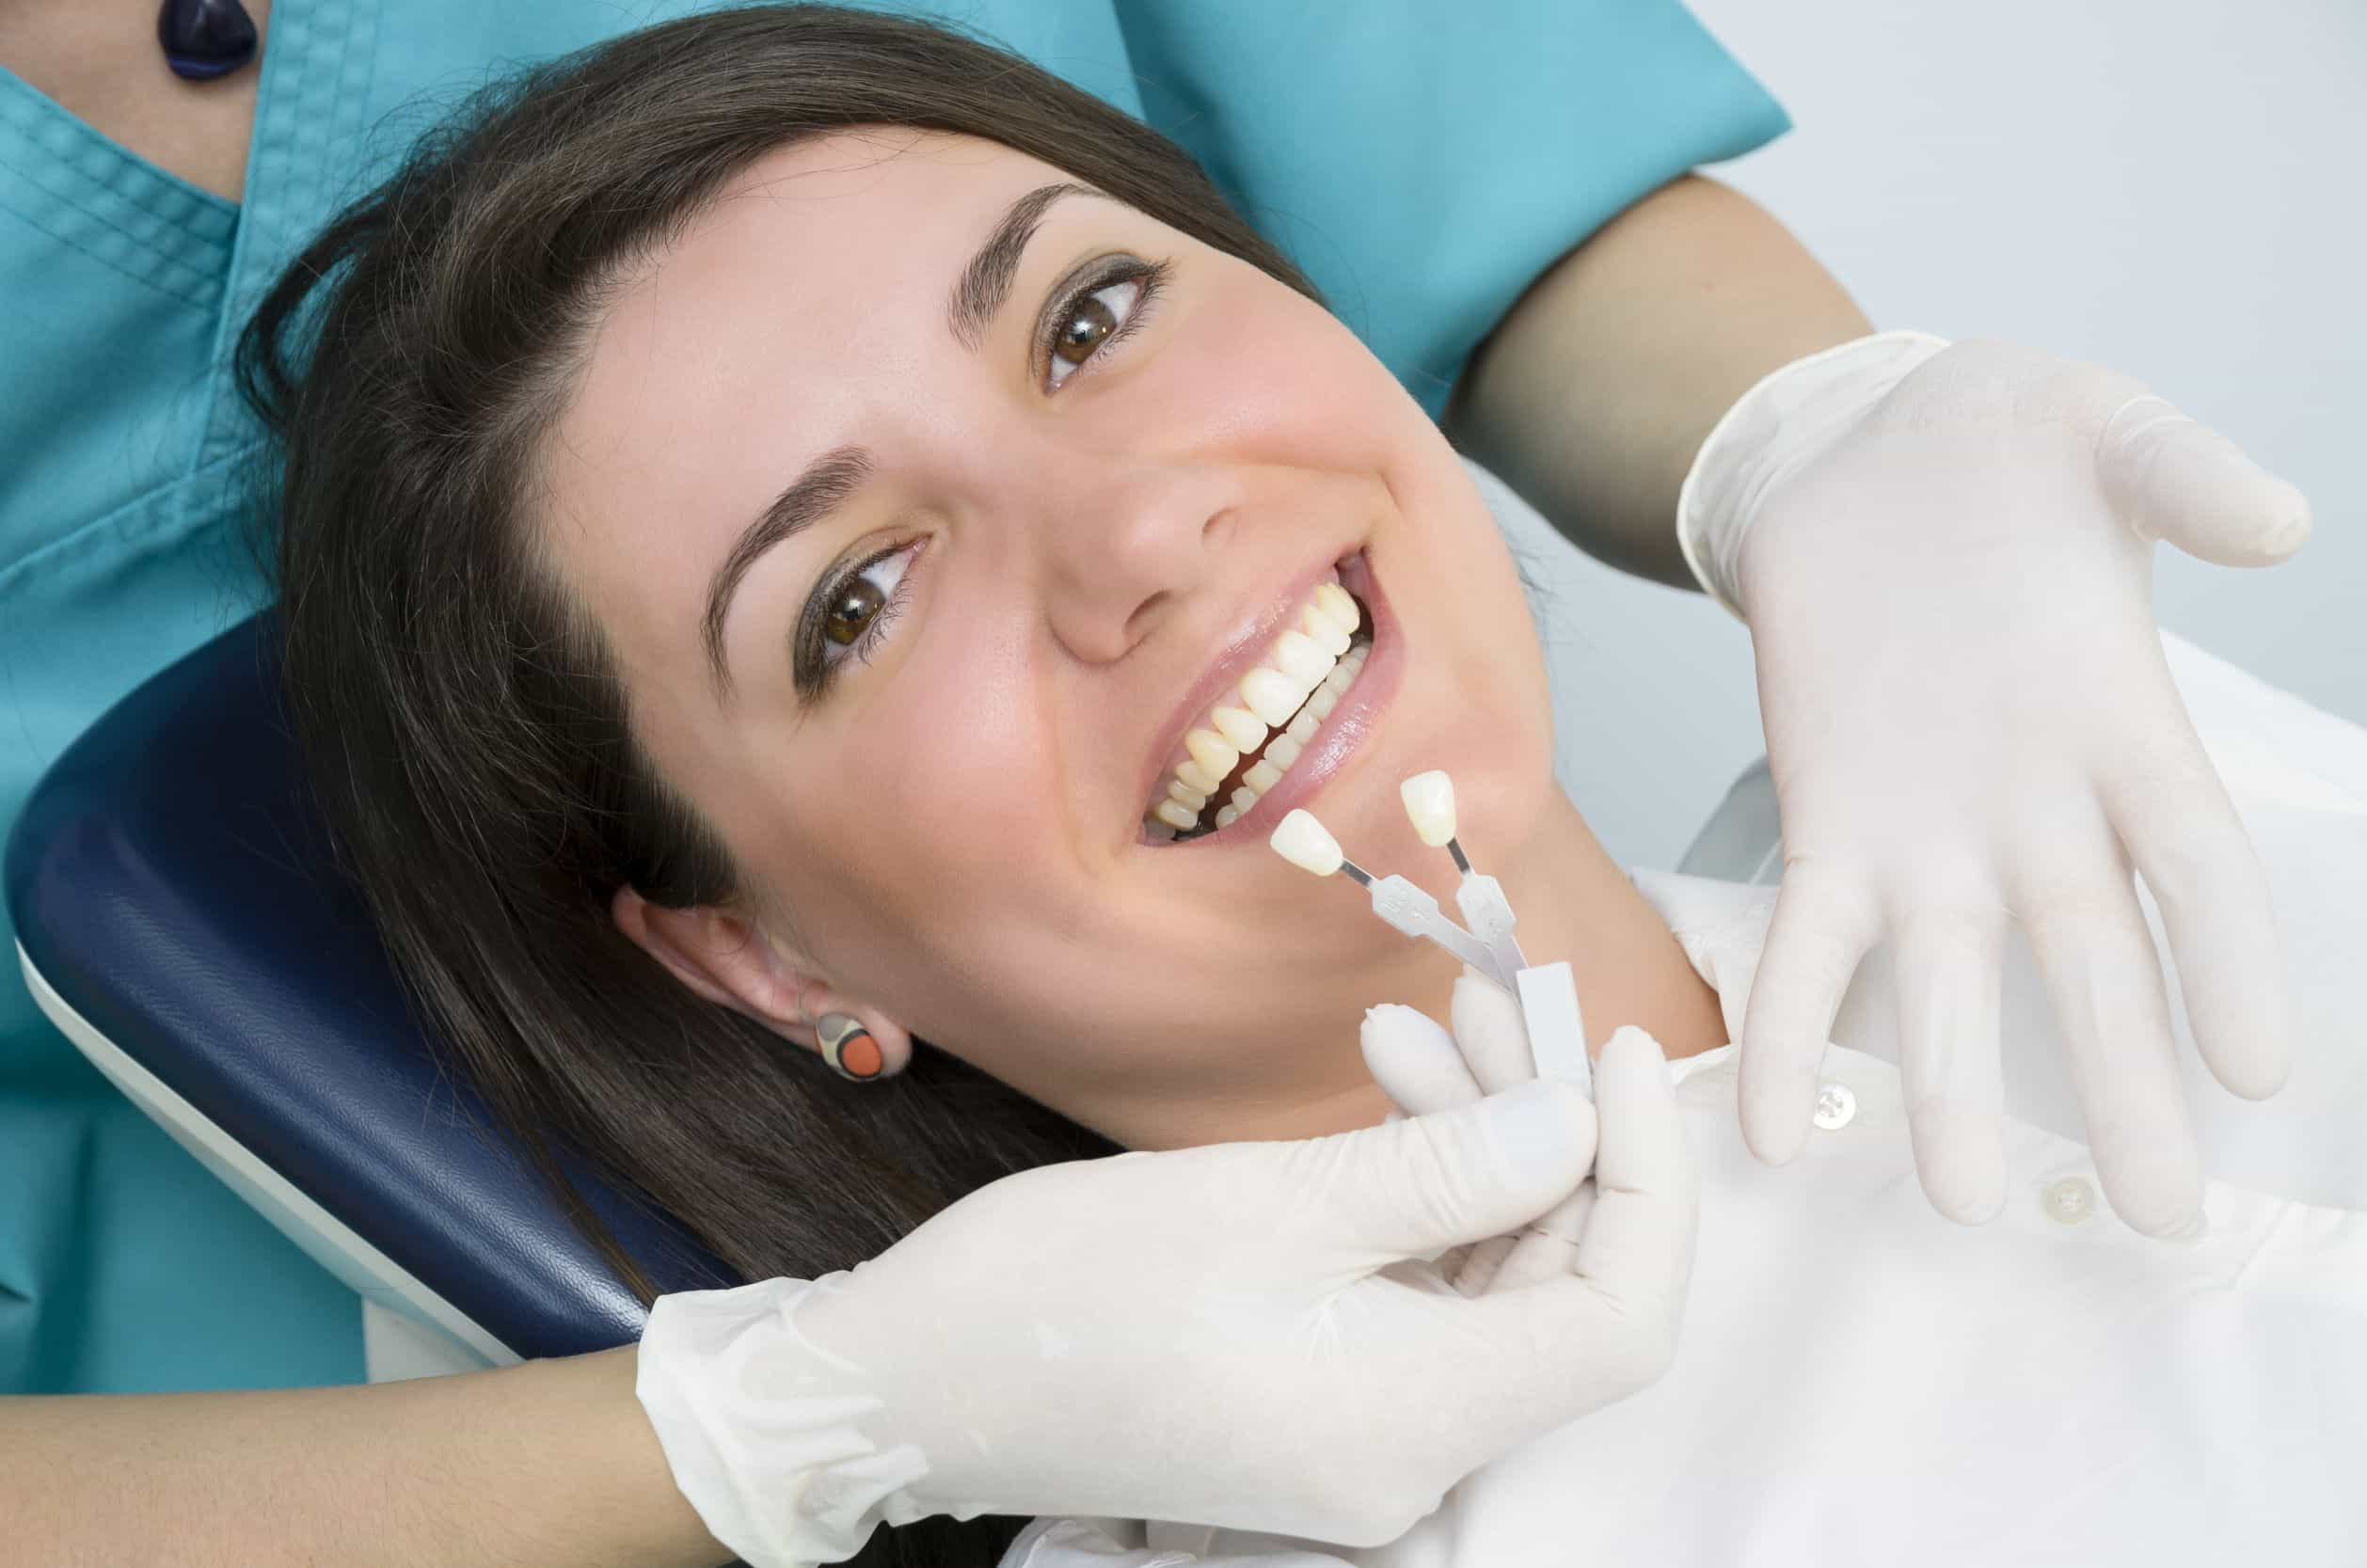 20442854 - a dentist showing porcelain teeth to pacient